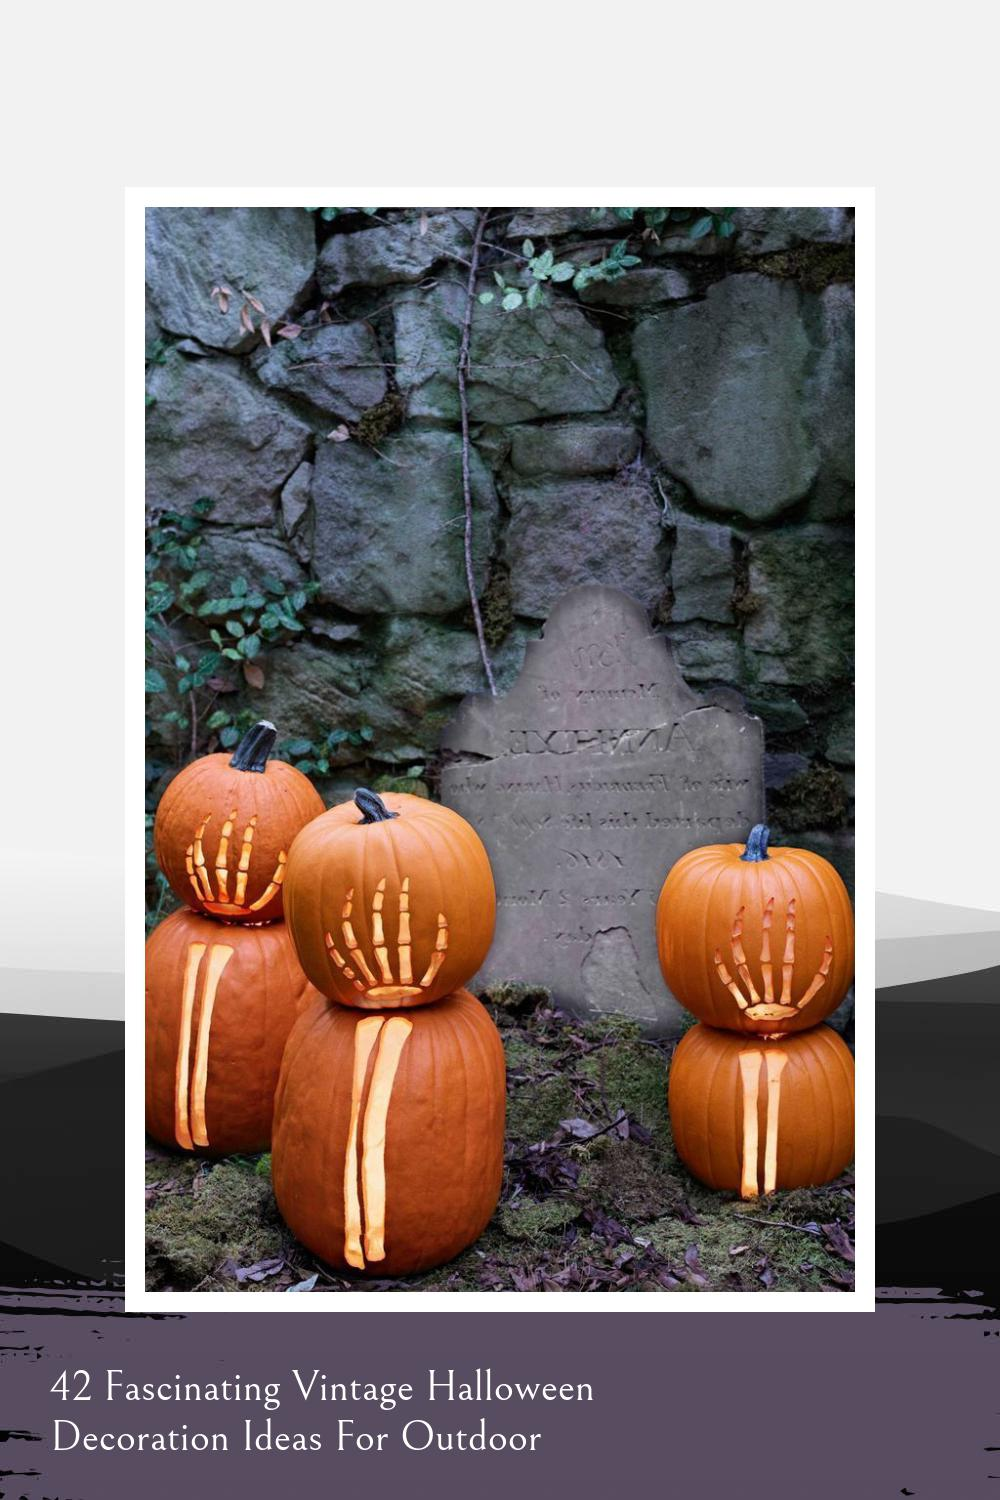 42 Fascinating Vintage Halloween Decoration Ideas For Outdoor 1